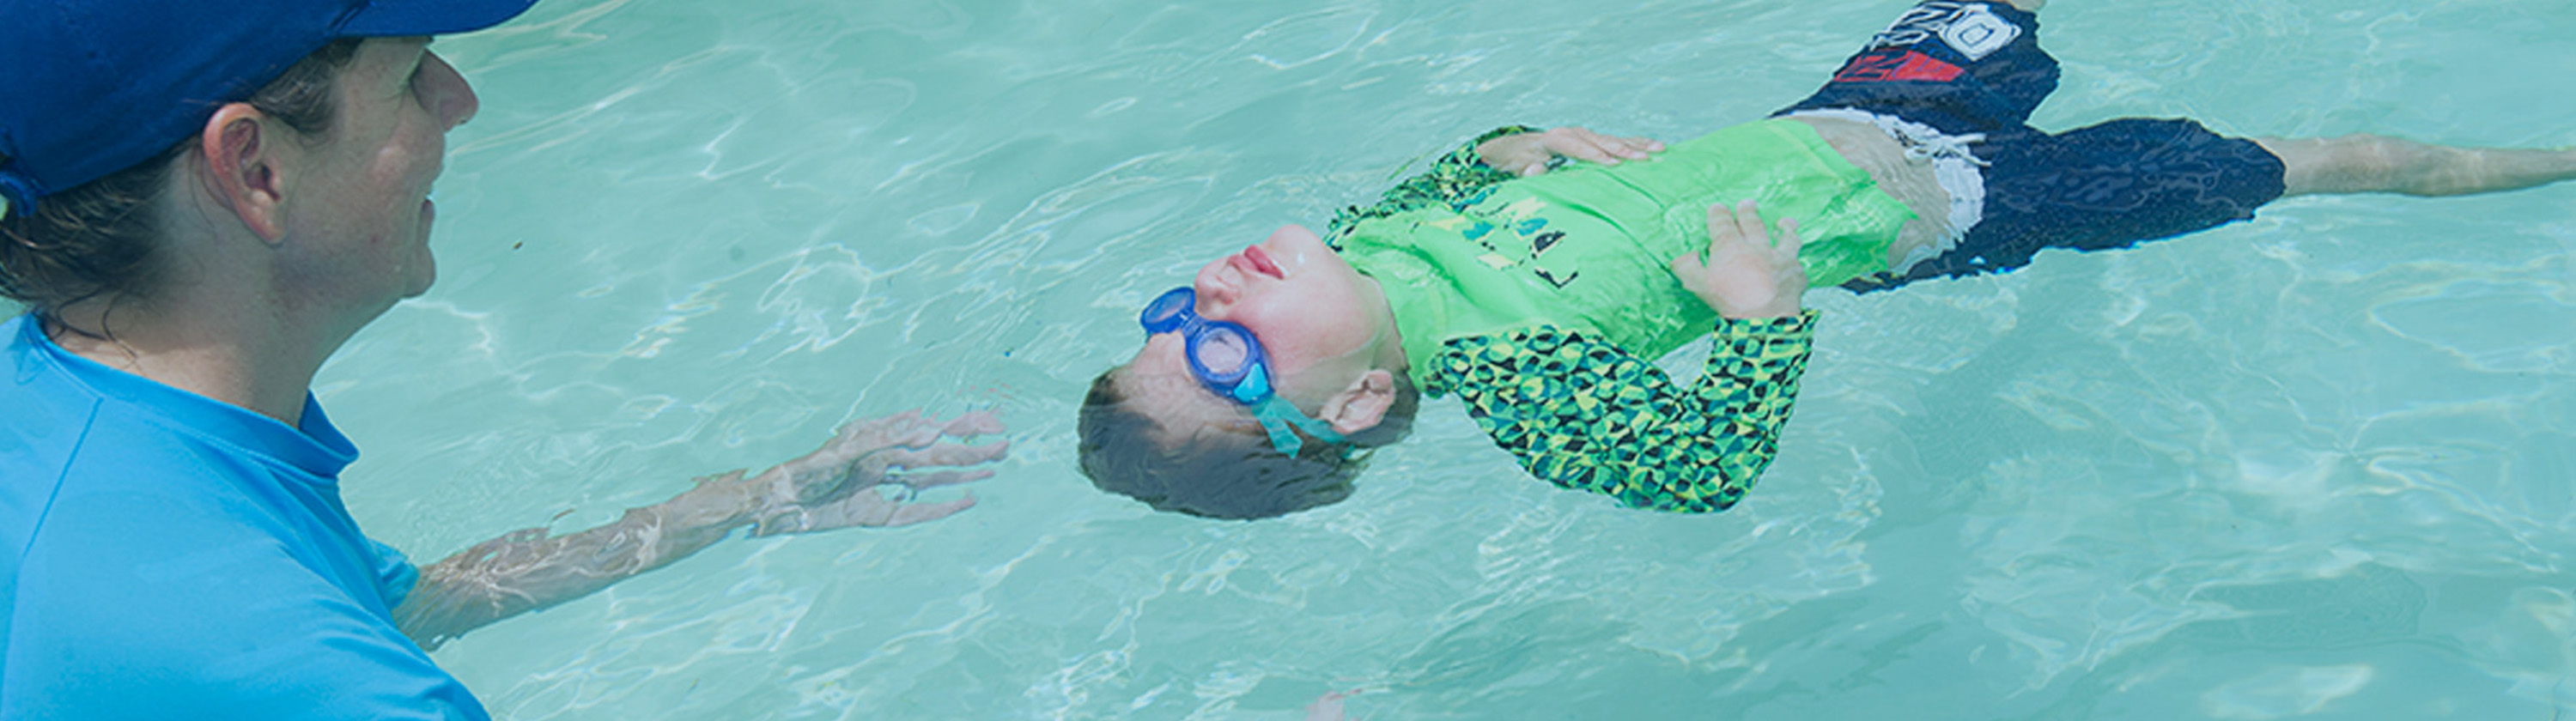 Infant_Aquatics_Survival_Swimming_lessons_Perth_wt_isit